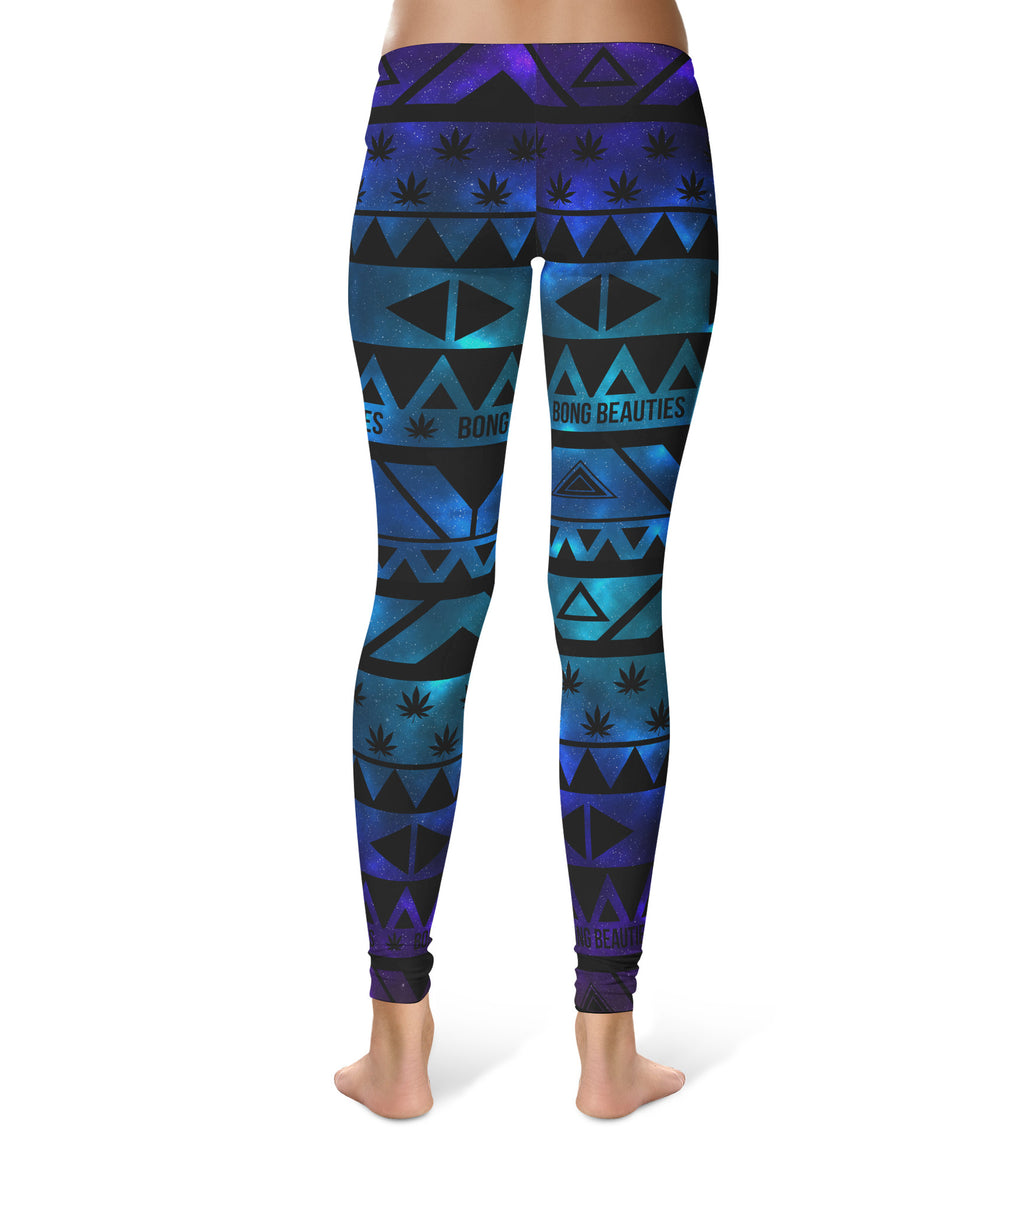 Aztec Galaxy Leggings - Bong Beauties